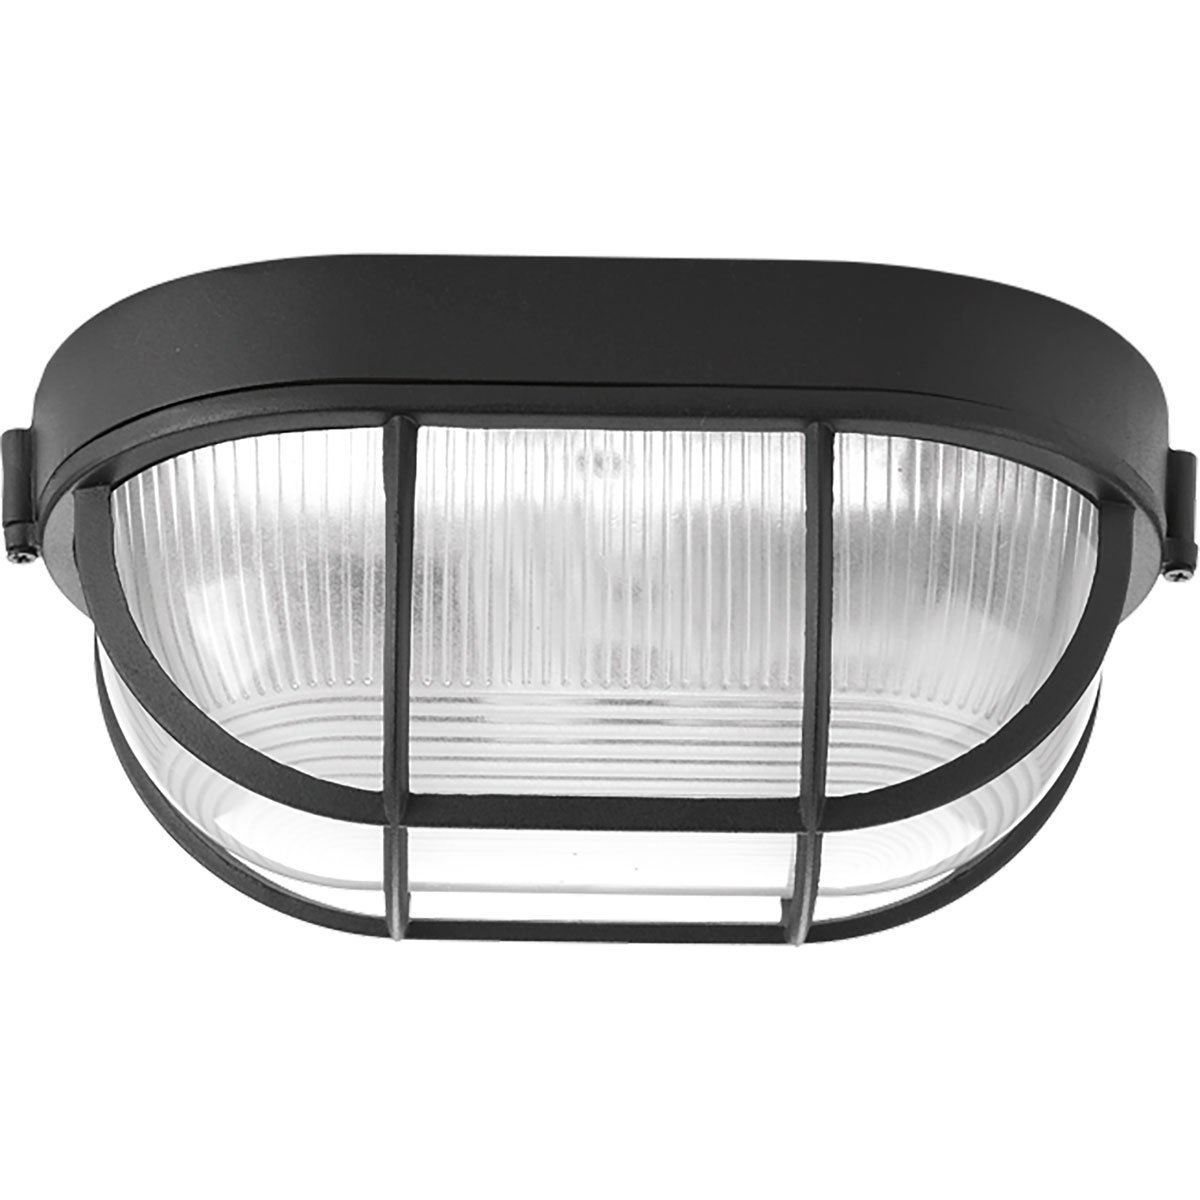 Progress Lighting P3706-31 Transitional One Light Flush Mount from Bulkheads Collection in Bronze/Dark Finish, 5.00 inches, Black